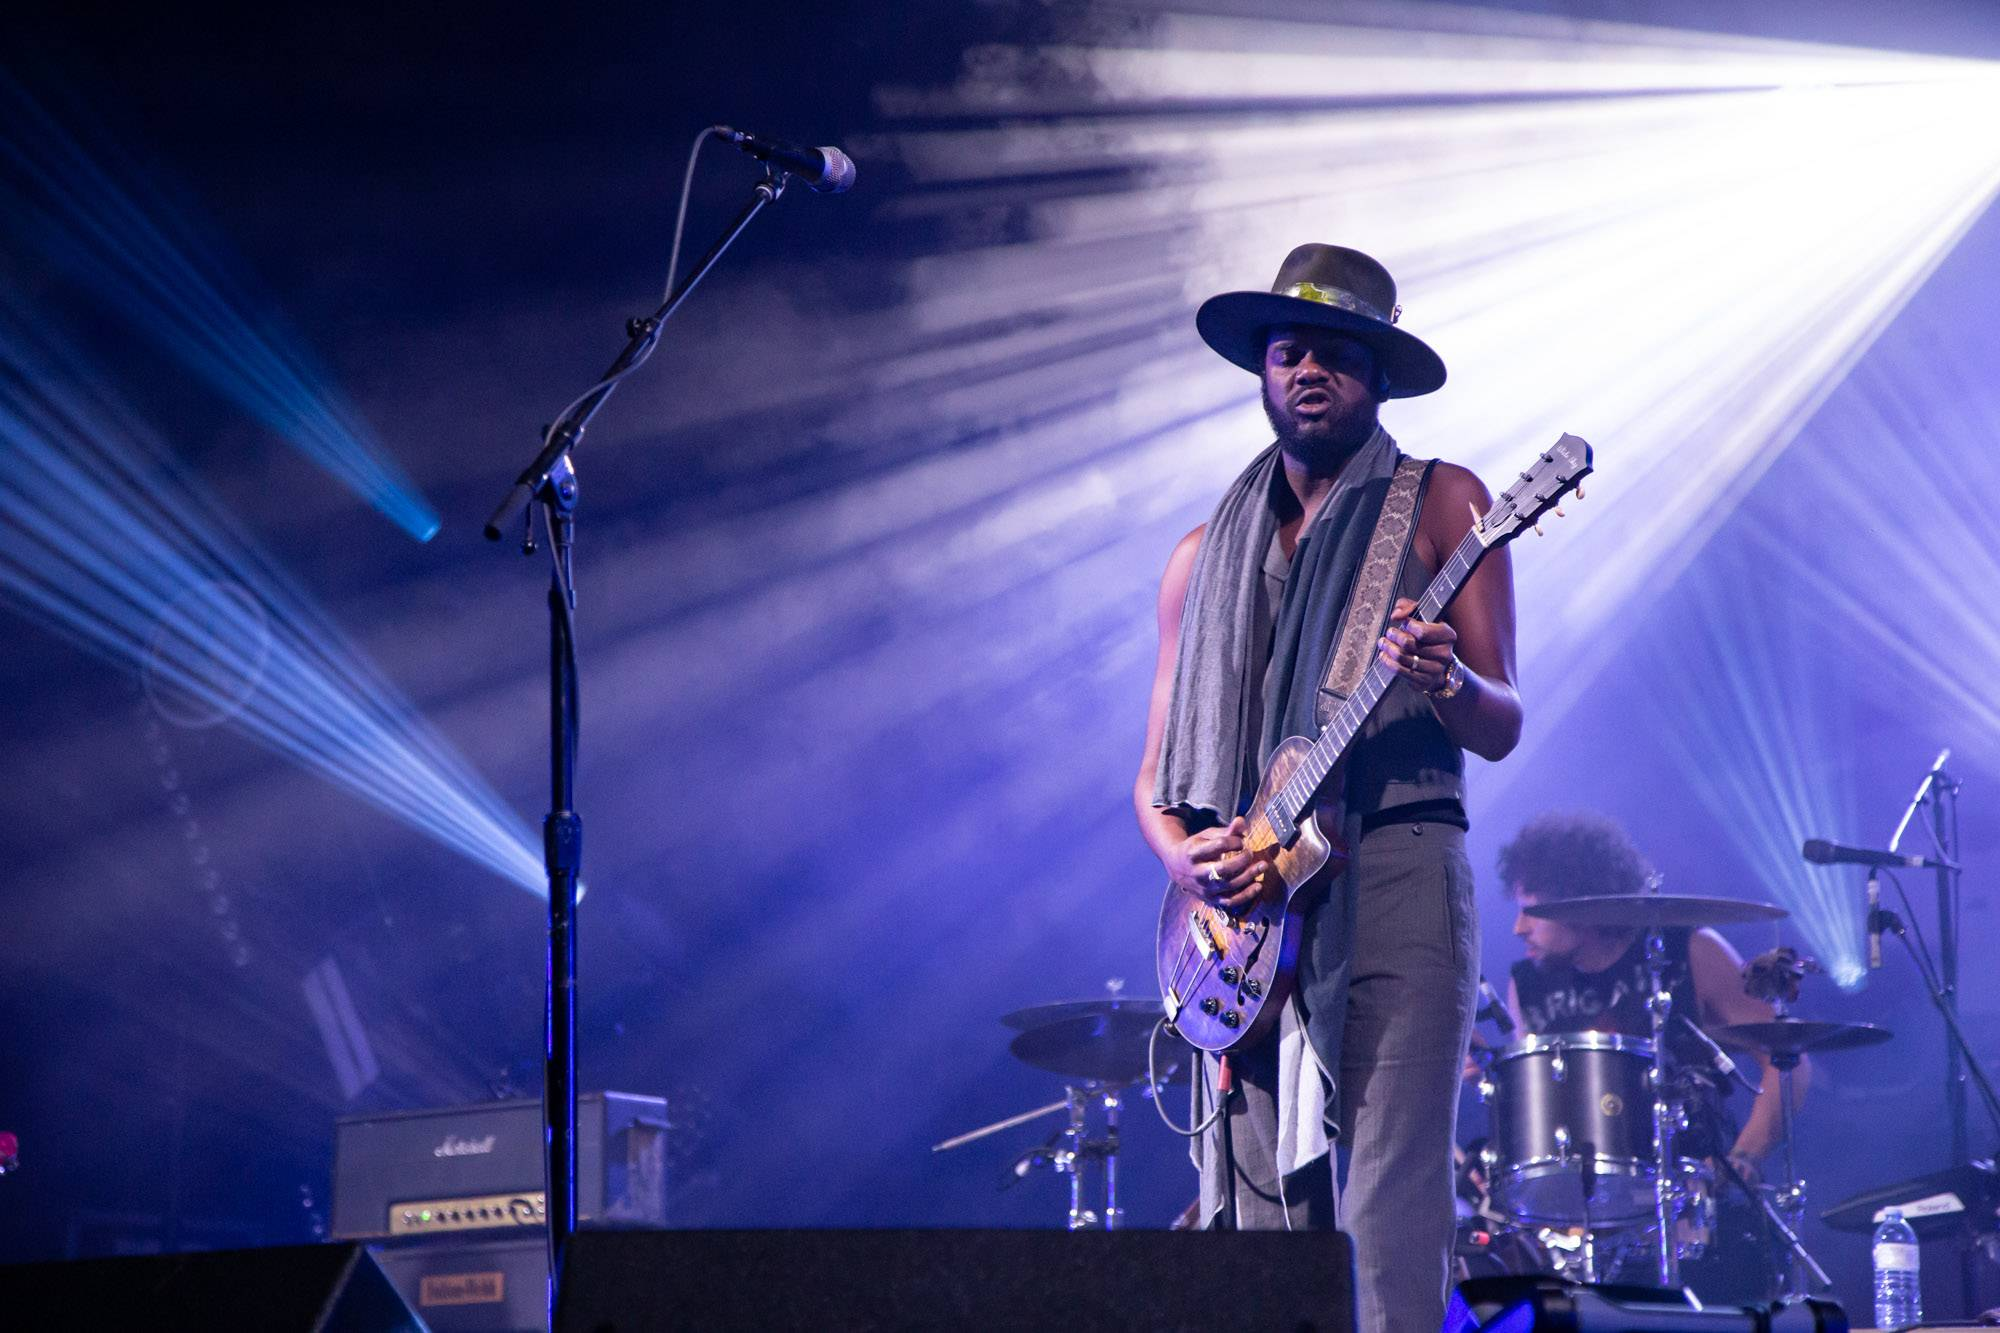 Gary Clark Jr. at the Malkin Bowl, Vancouver, Sep 10 2019. Kirk Chantraine photo.